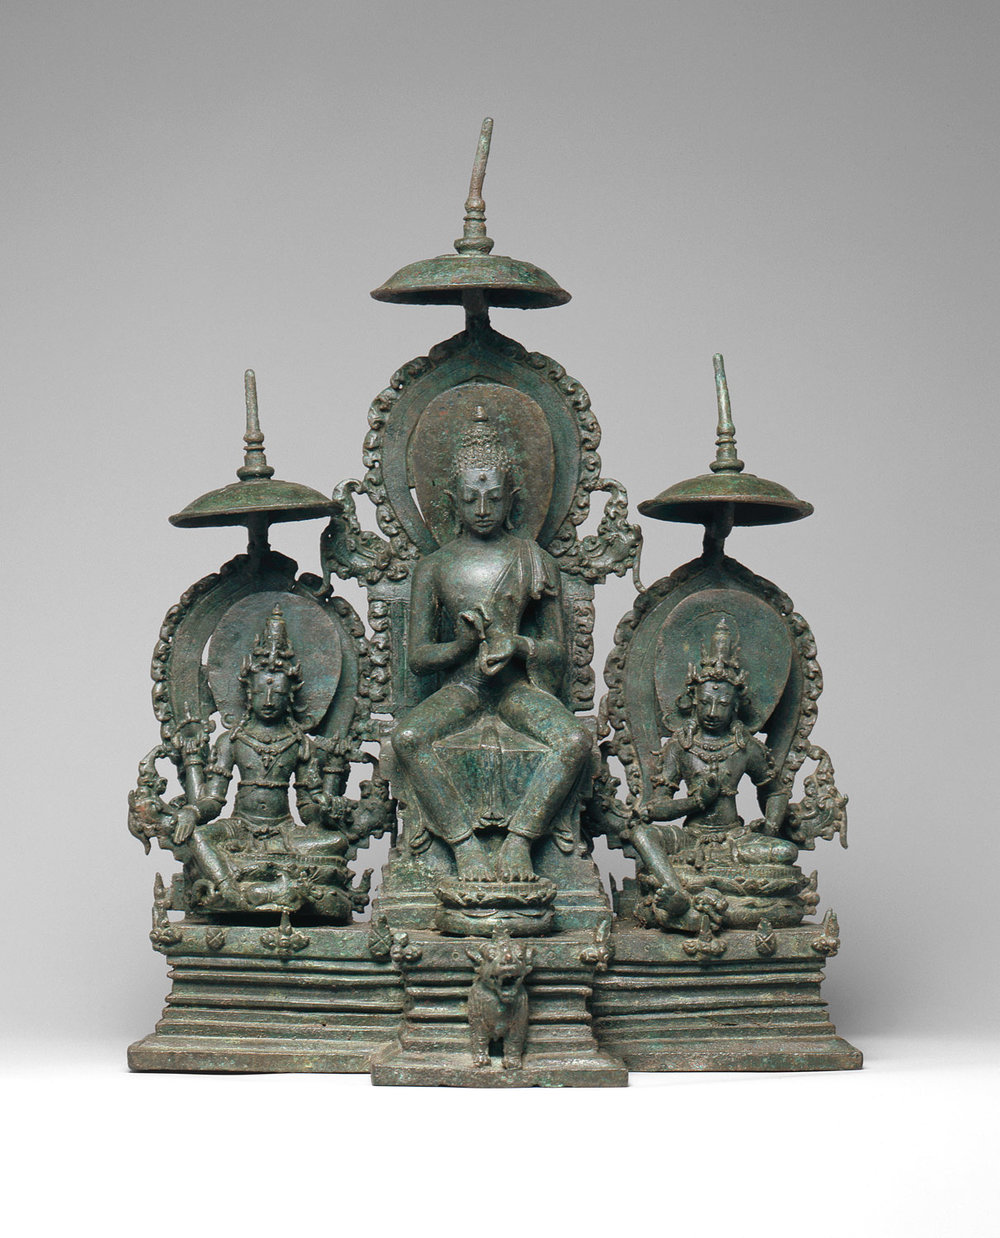 Enthroned Buddha Attended by the Bodhisattvas Avalokiteshvara and Vajrapani. Second half of the 10th century. Early Eastern Javanese period. Indonesia. Image courtesy of  The Met .